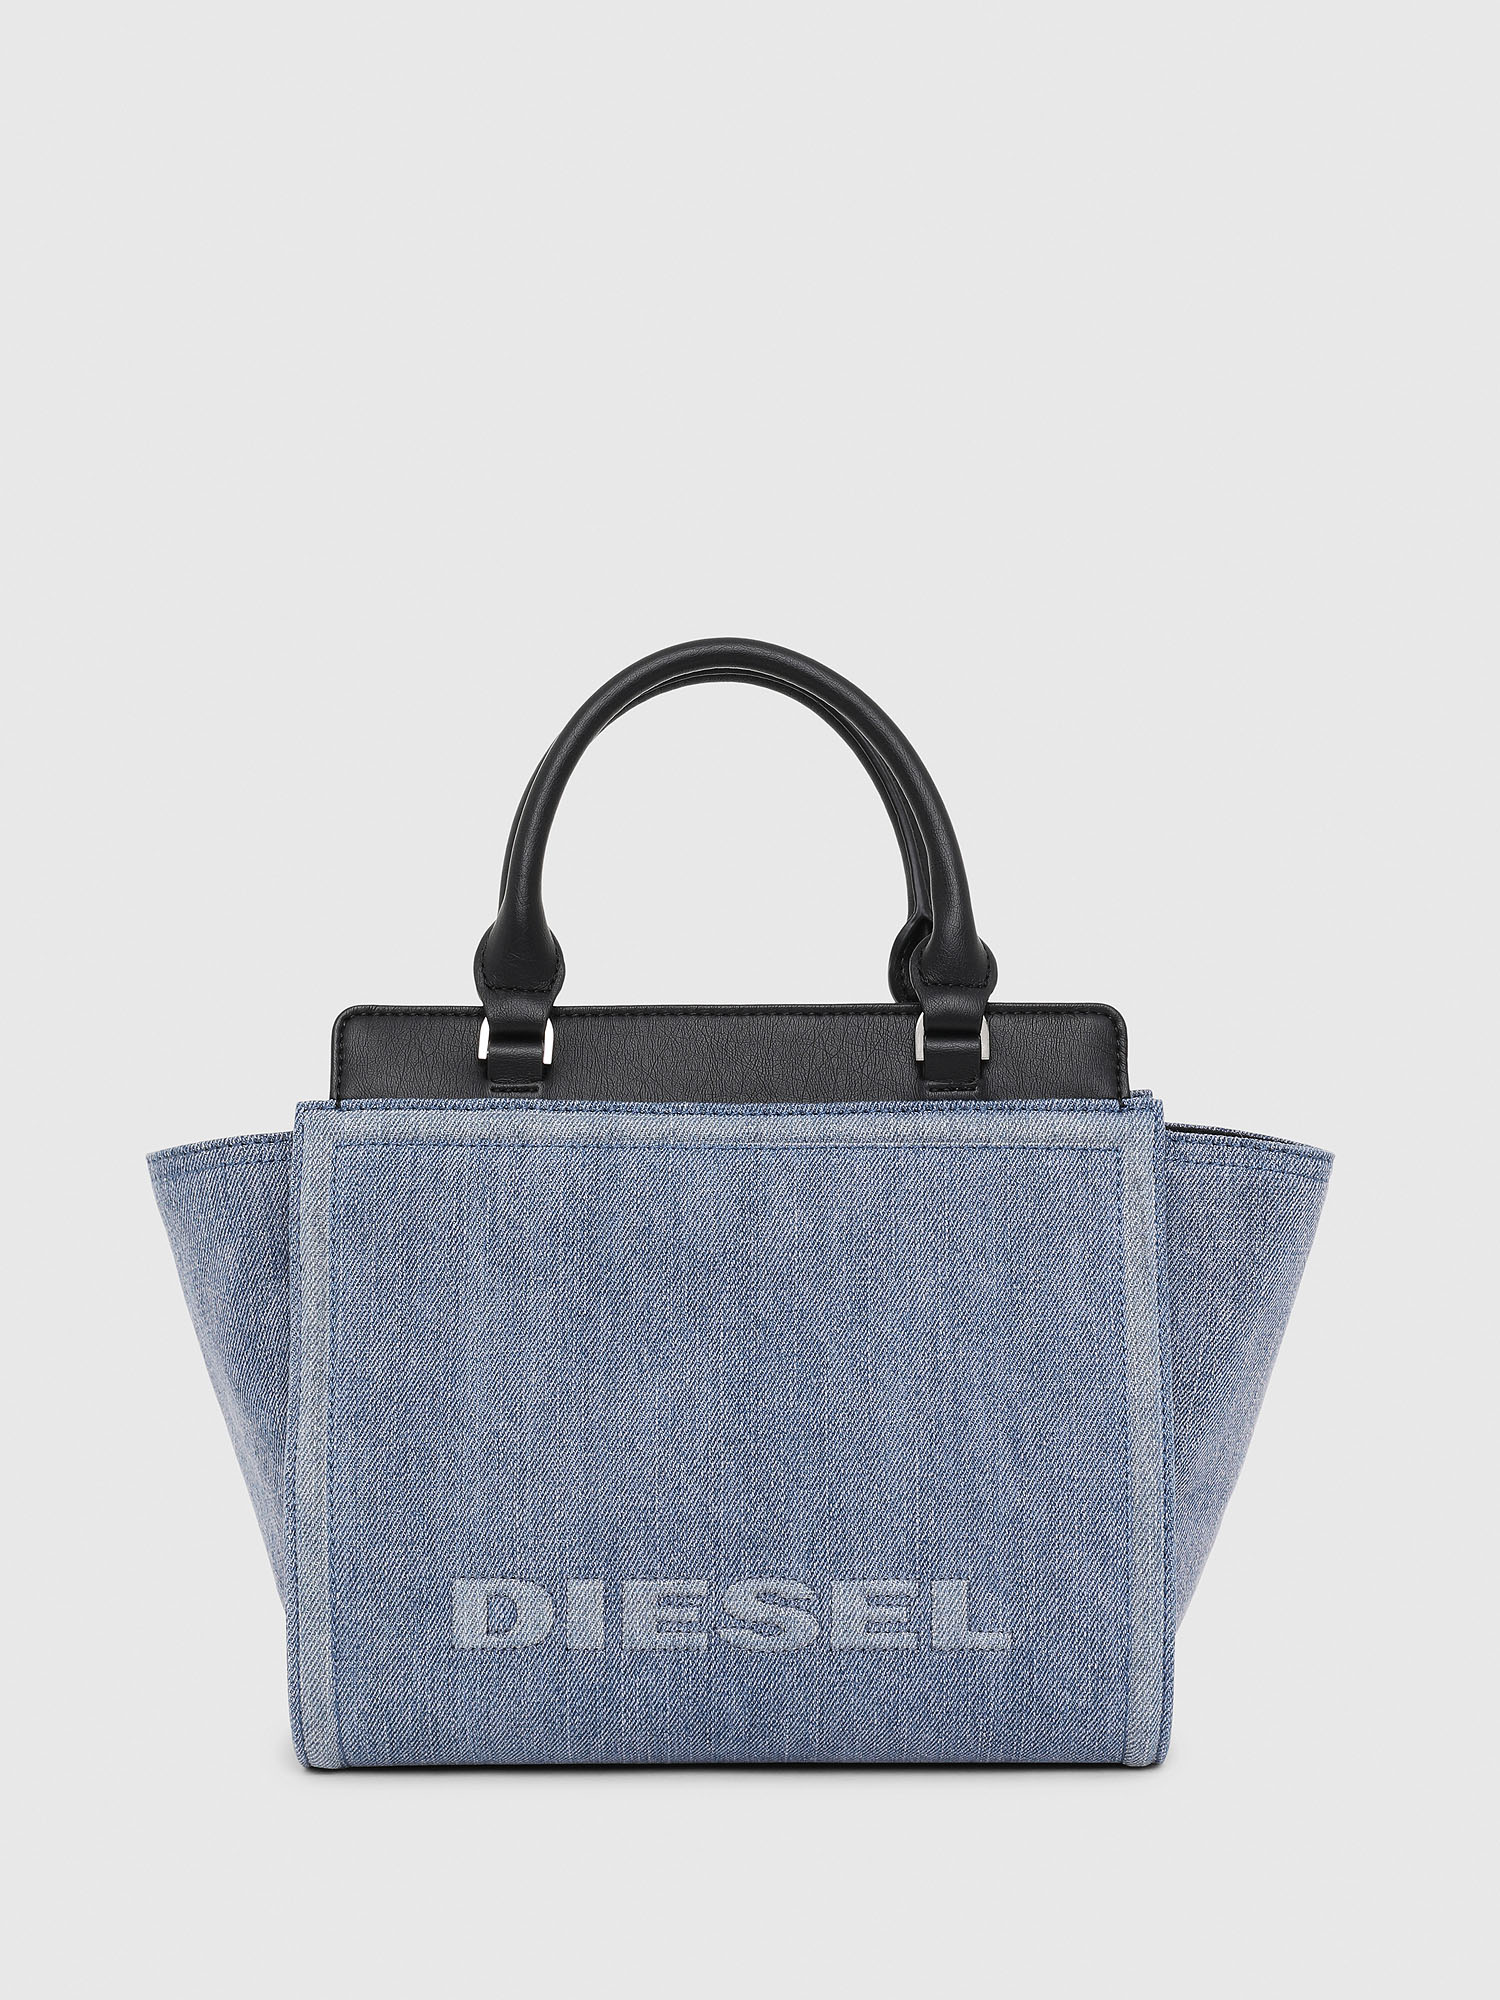 Diesel - BADIA,  - Satchels and Handbags - Image 1